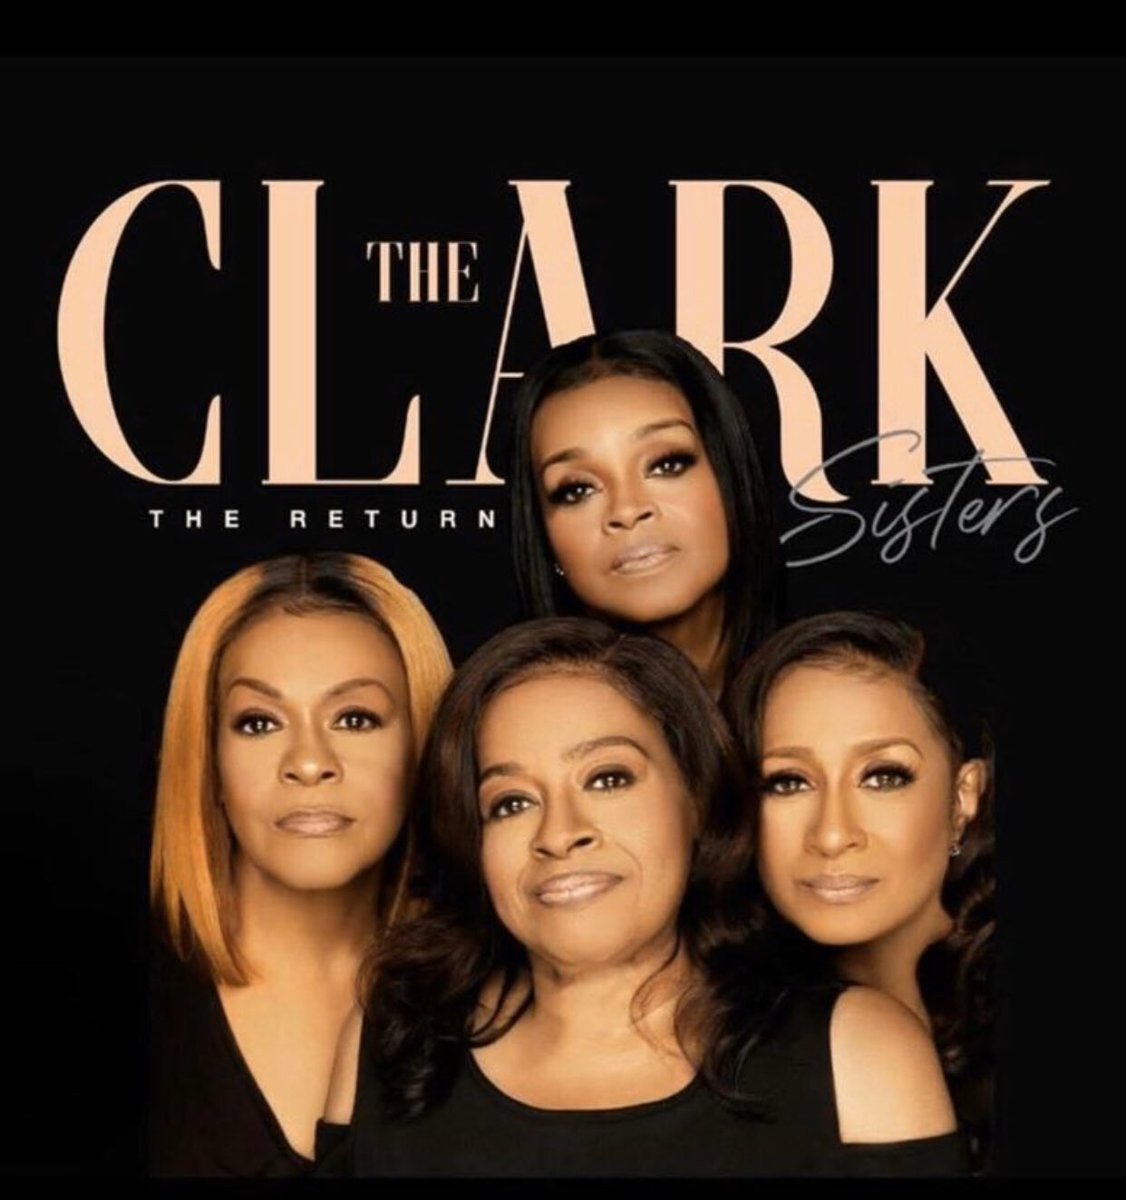 New Music from Me and my sisters! Download it now!!!! https://t.co/9scVTy8CH9